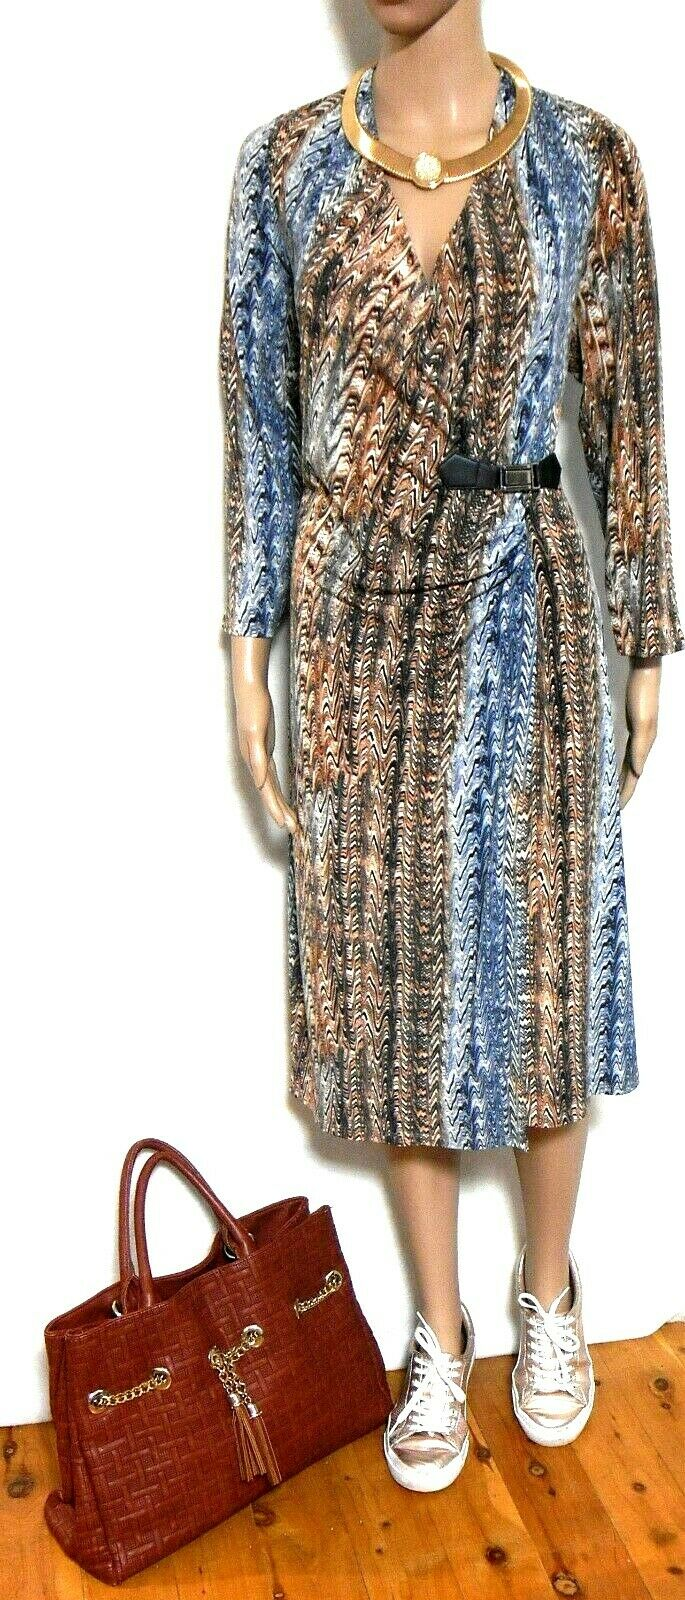 Diana Ferrari dress, as new, sz. 16, mock wrap style, blues/tans, as new